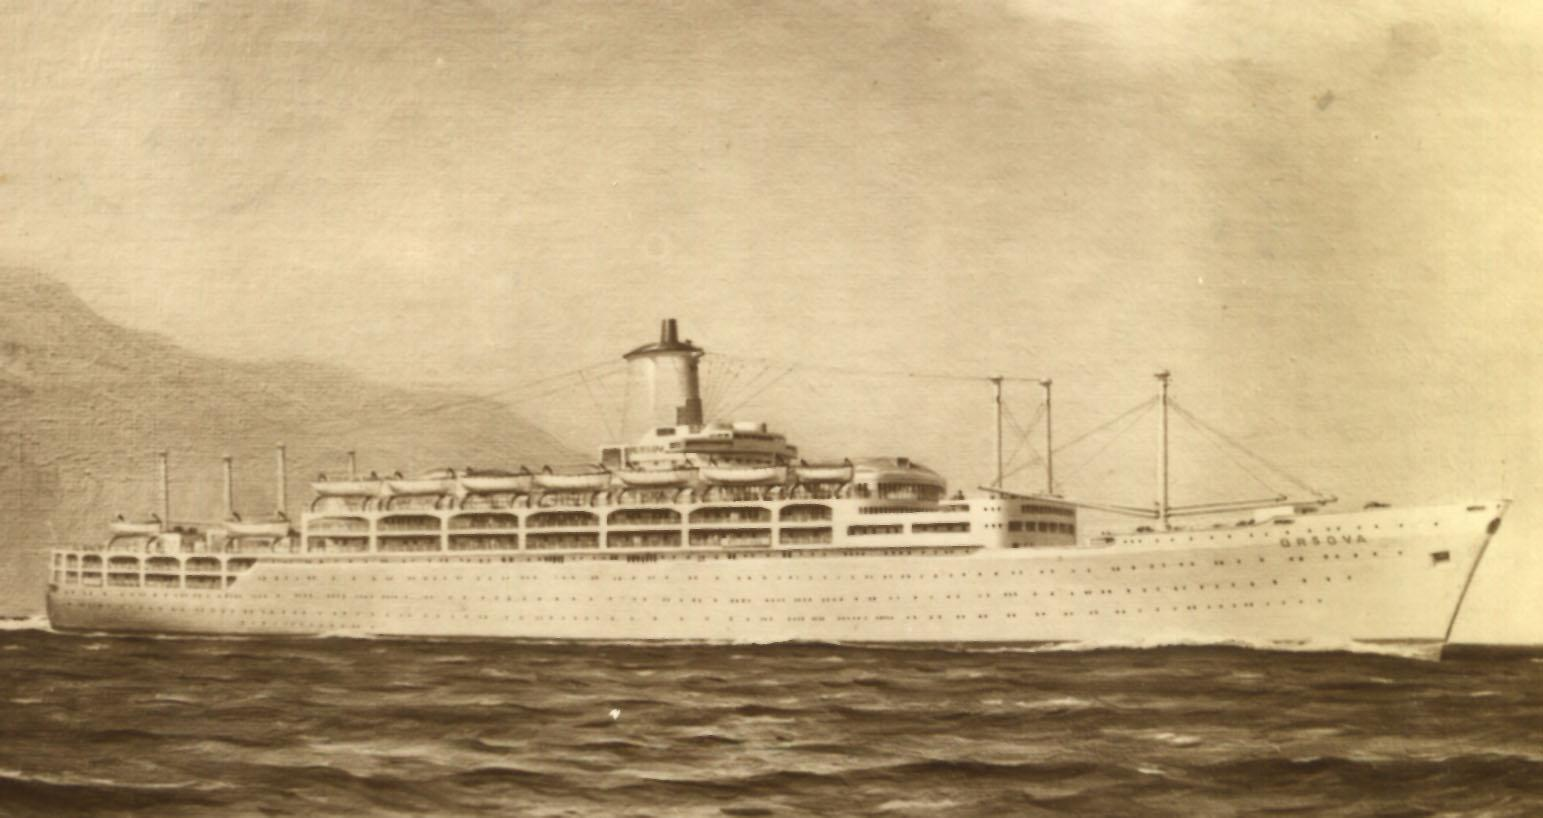 """Passenger Vessel """"S.S. Orsova"""", launched on 14 May 1953 by Lady Anderson and completed in February 1954.  Built by Vickers-Armstrongs Ltd - Barrow-In-Furness, England.  She took her inaugural voyage on 17 march 1954 from London to Sydney. Base Port:  Ini"""